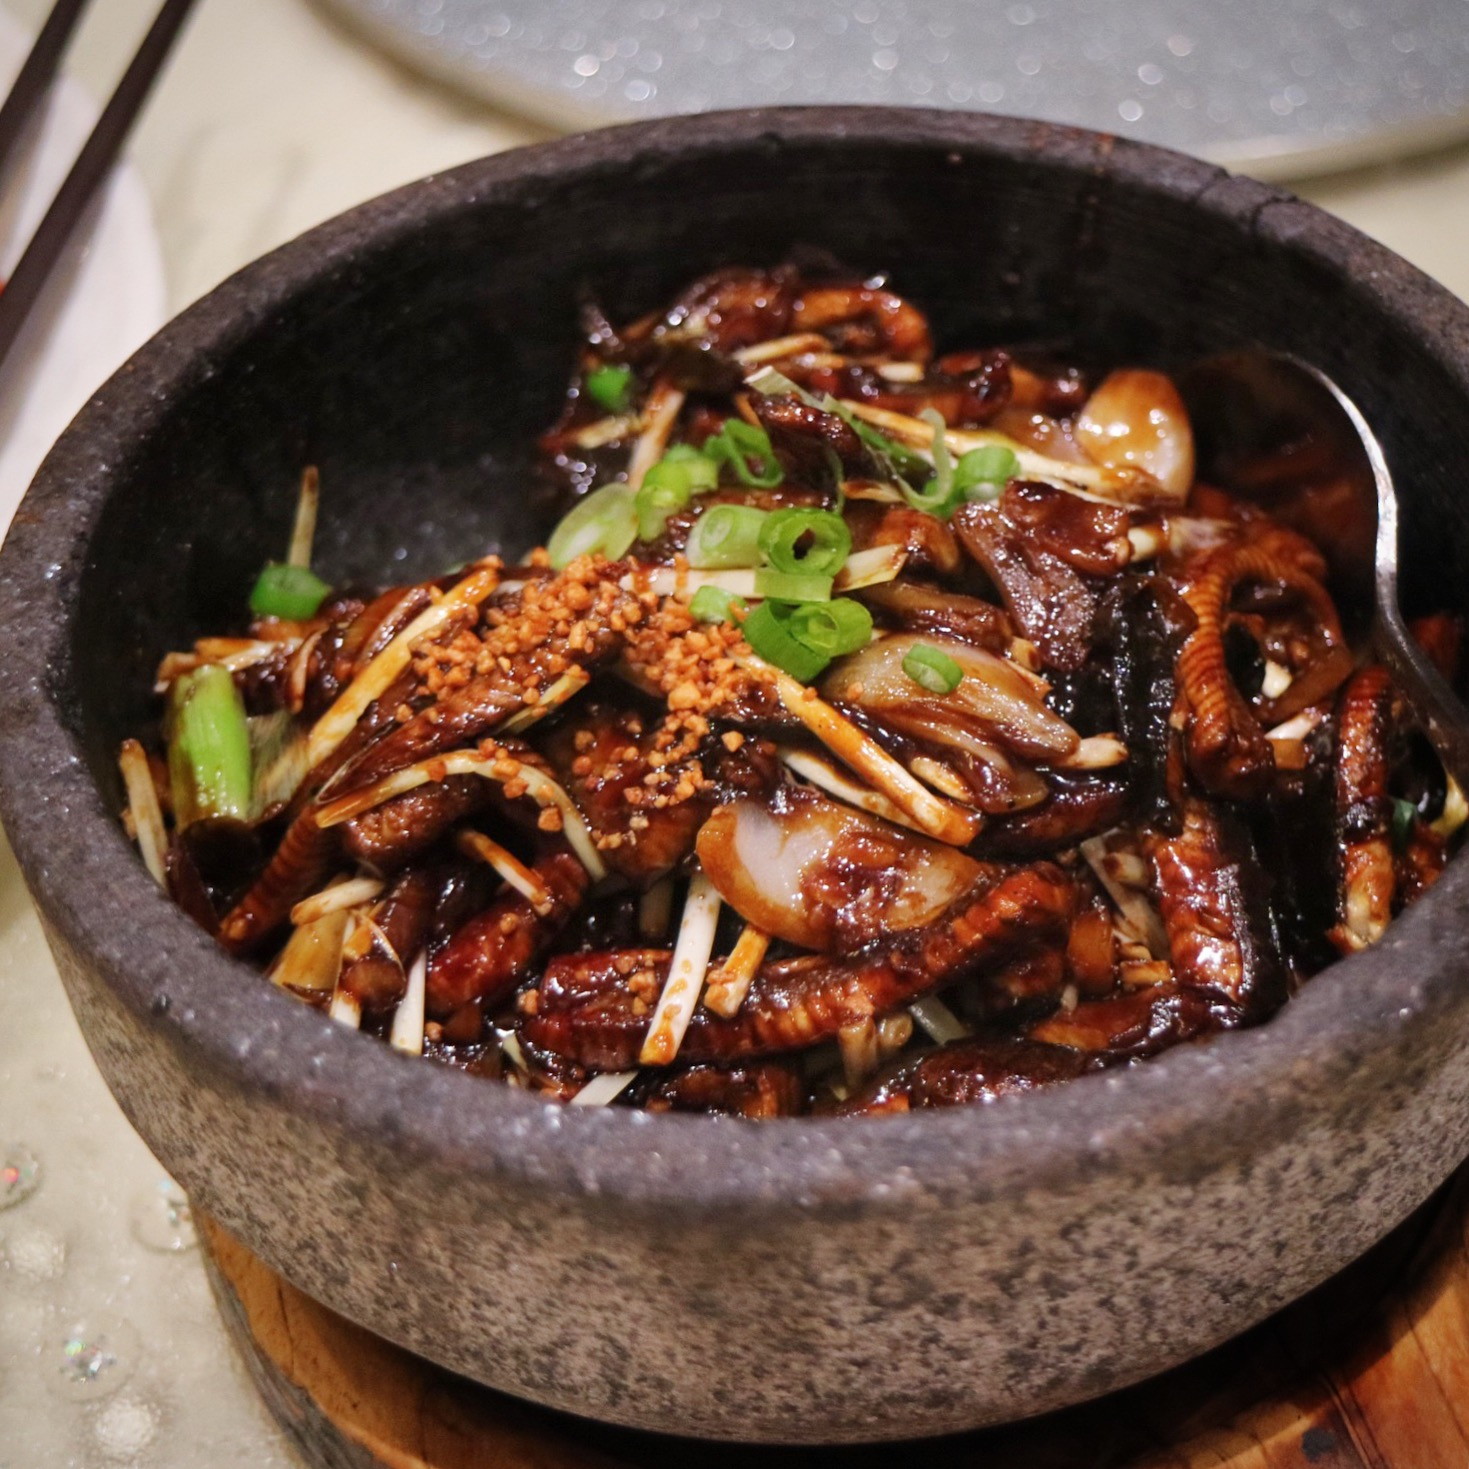 Fried Eel in Stone Bowl